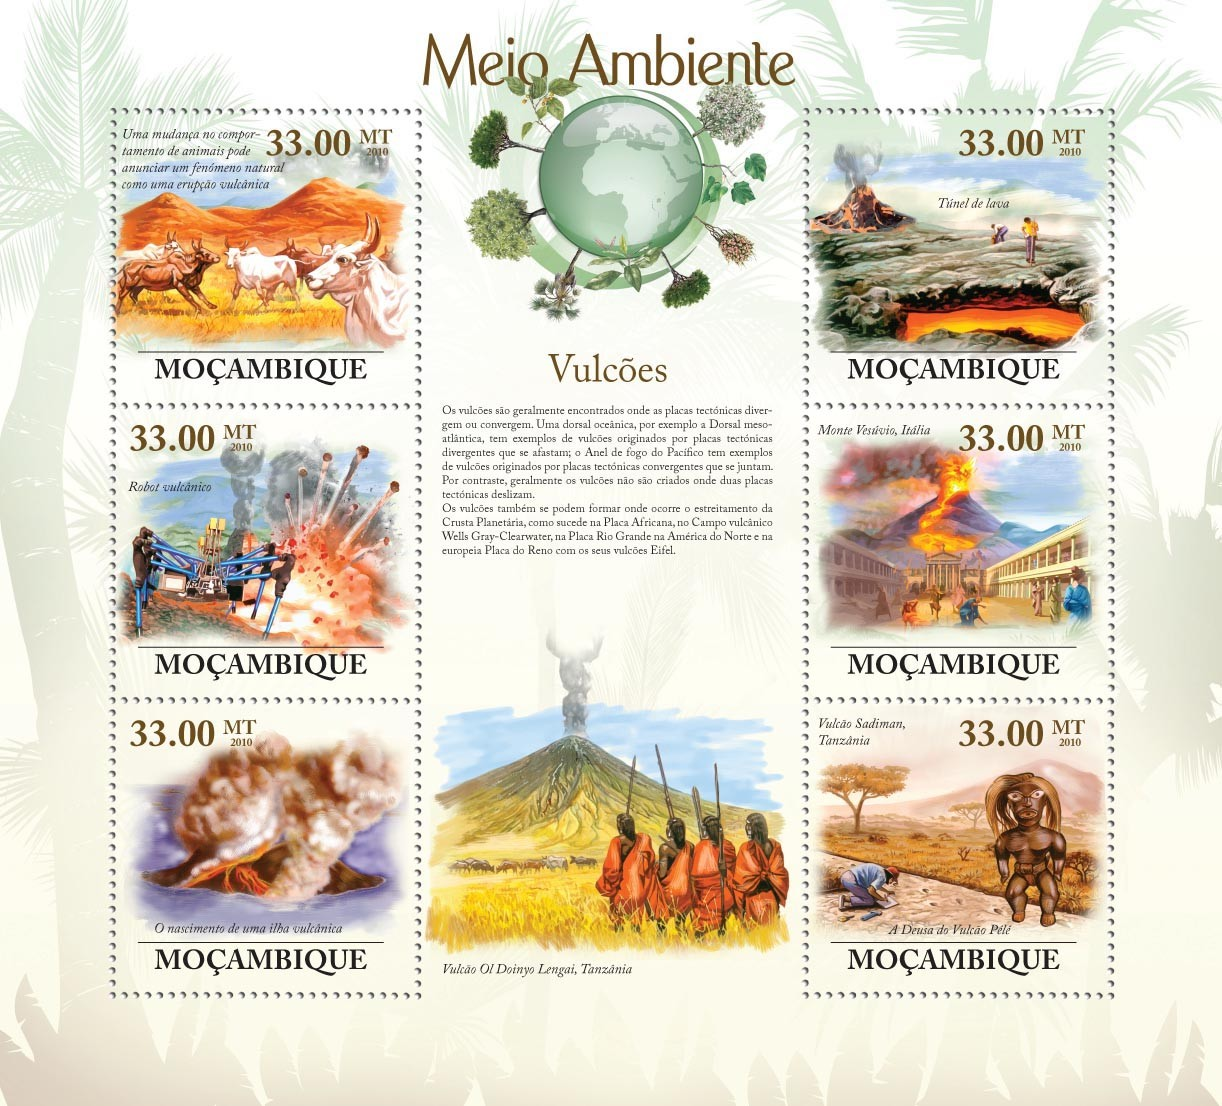 Volcanoes, ( Volcanoes of Tanzania, Italia, Disasters of Volcanoes ) - Issue of Mozambique postage Stamps